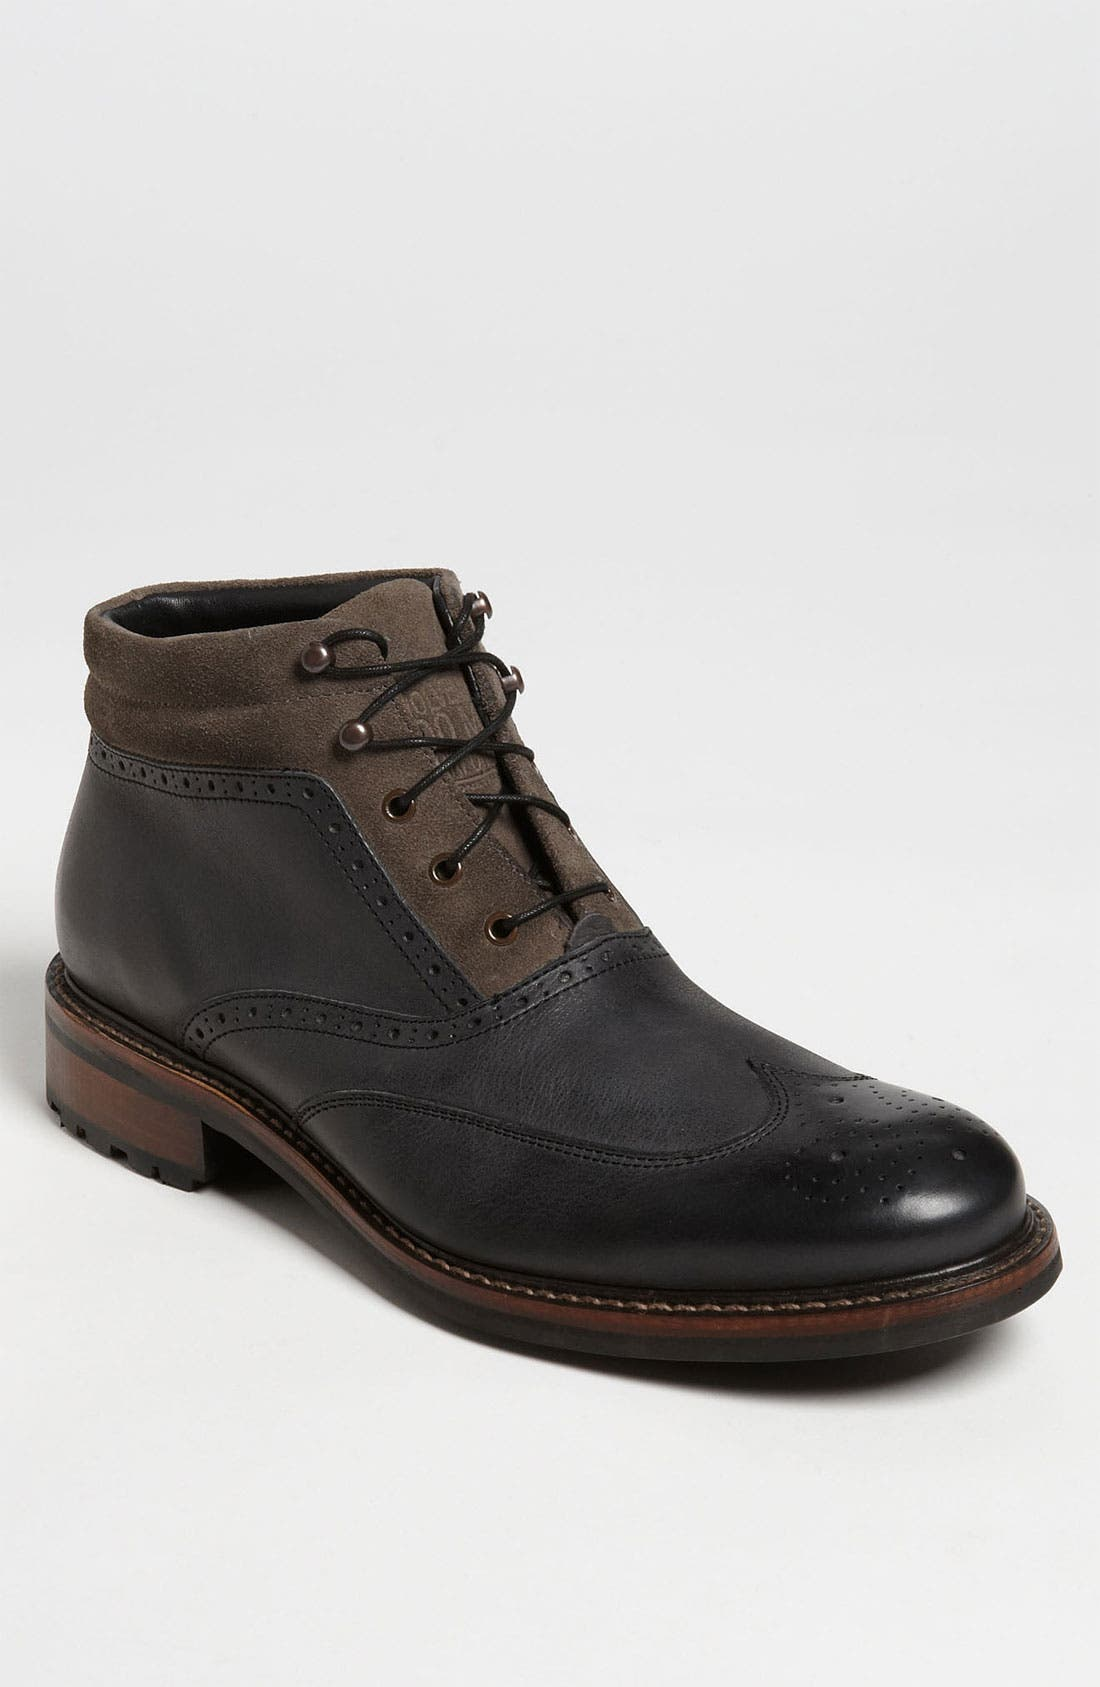 Alternate Image 1 Selected - Wolverine '1000 Mile - Wyatt' Wingtip Boot